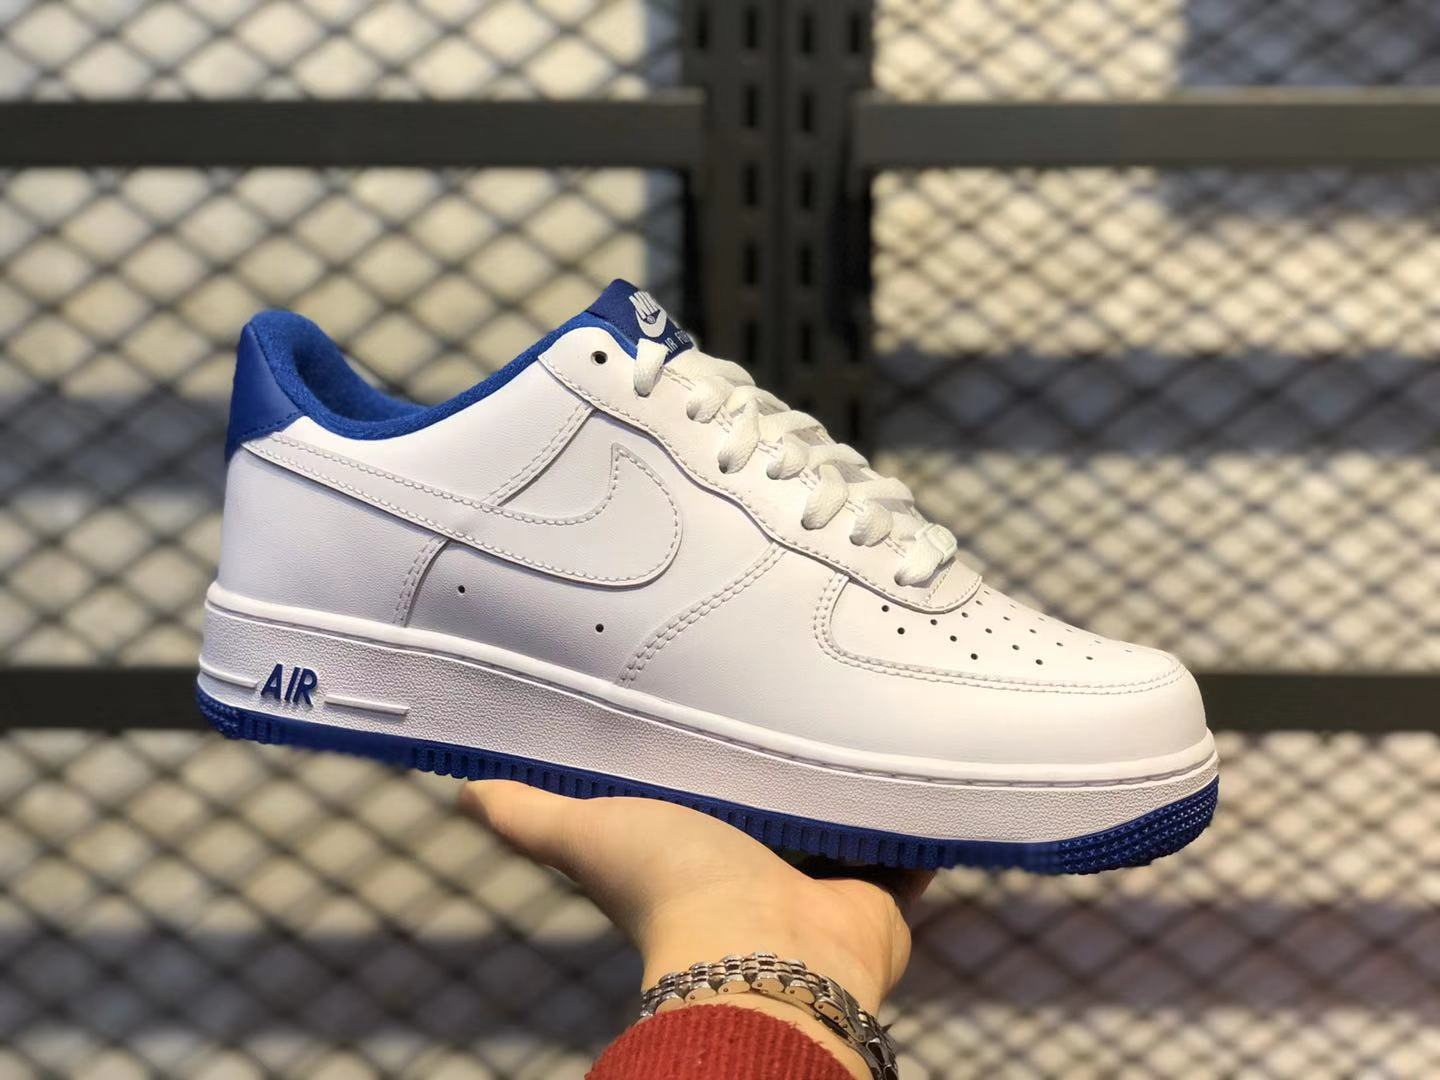 2020 Nike Air Force 1 Low White/Navy Blue Casual Shoes Online Buy CD0884-102